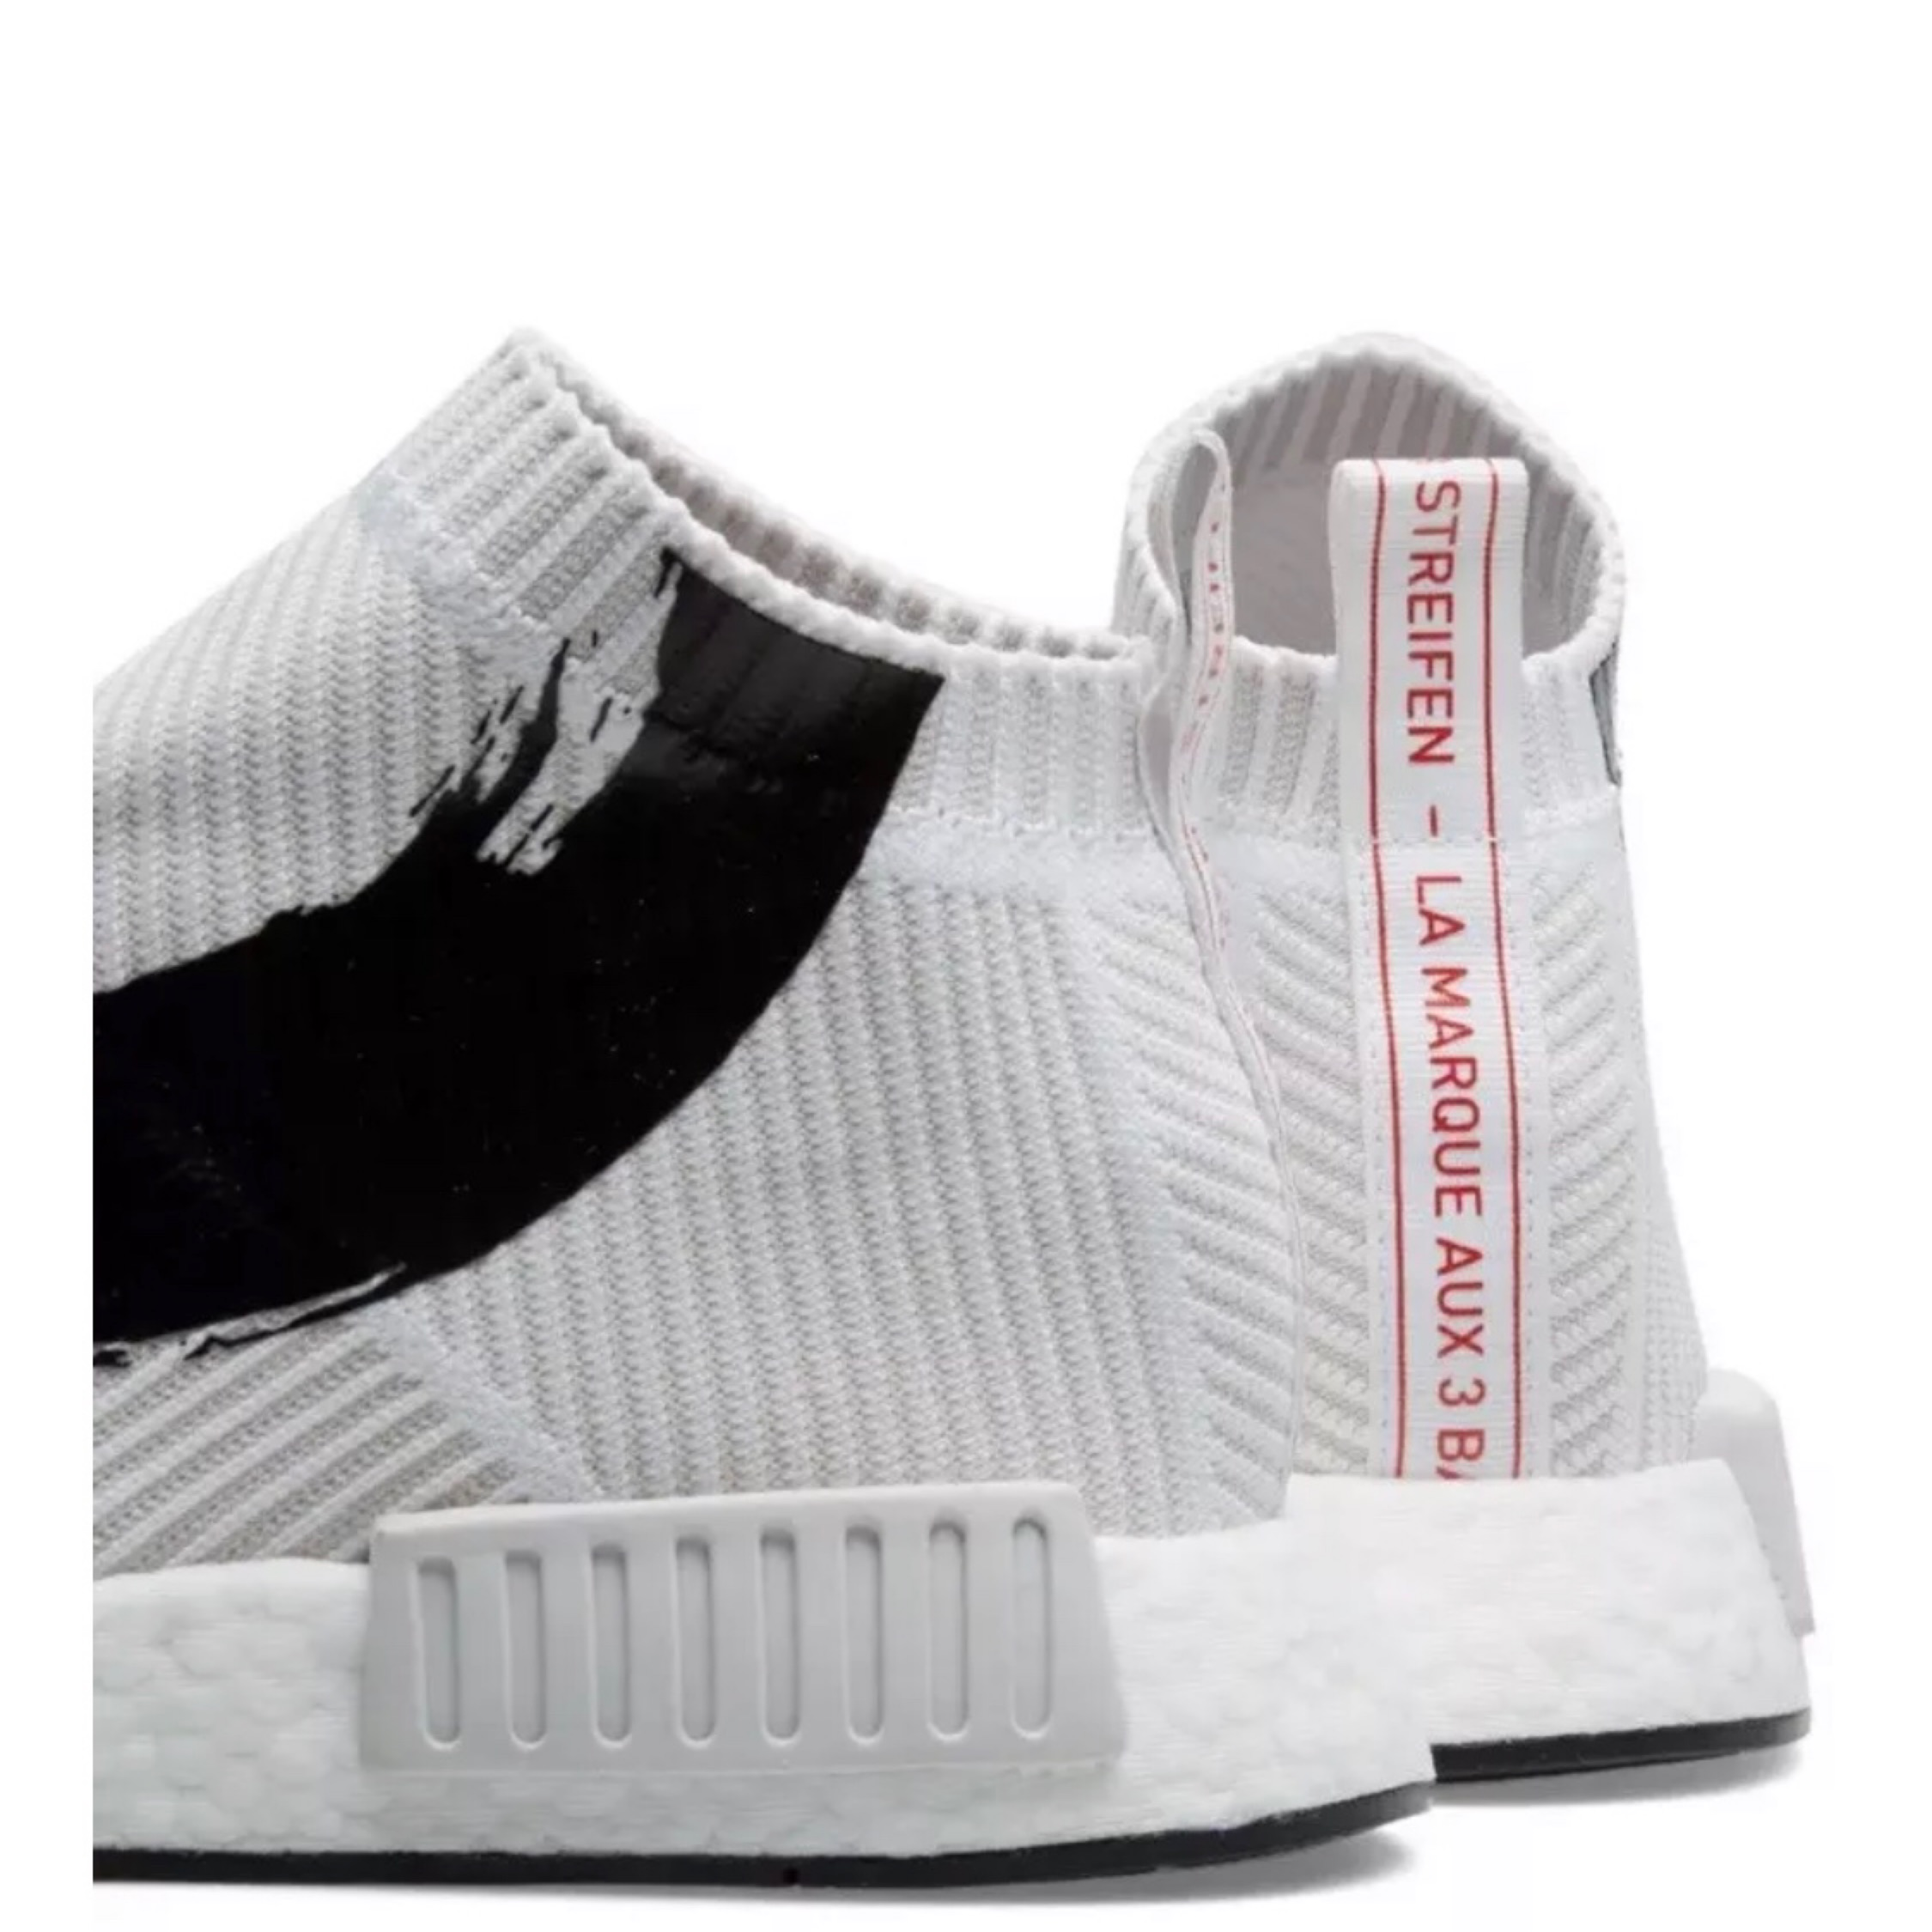 6b5e0ff9af48c Adidas Energy Nmd Cs1 Pk White Trainers Japanese